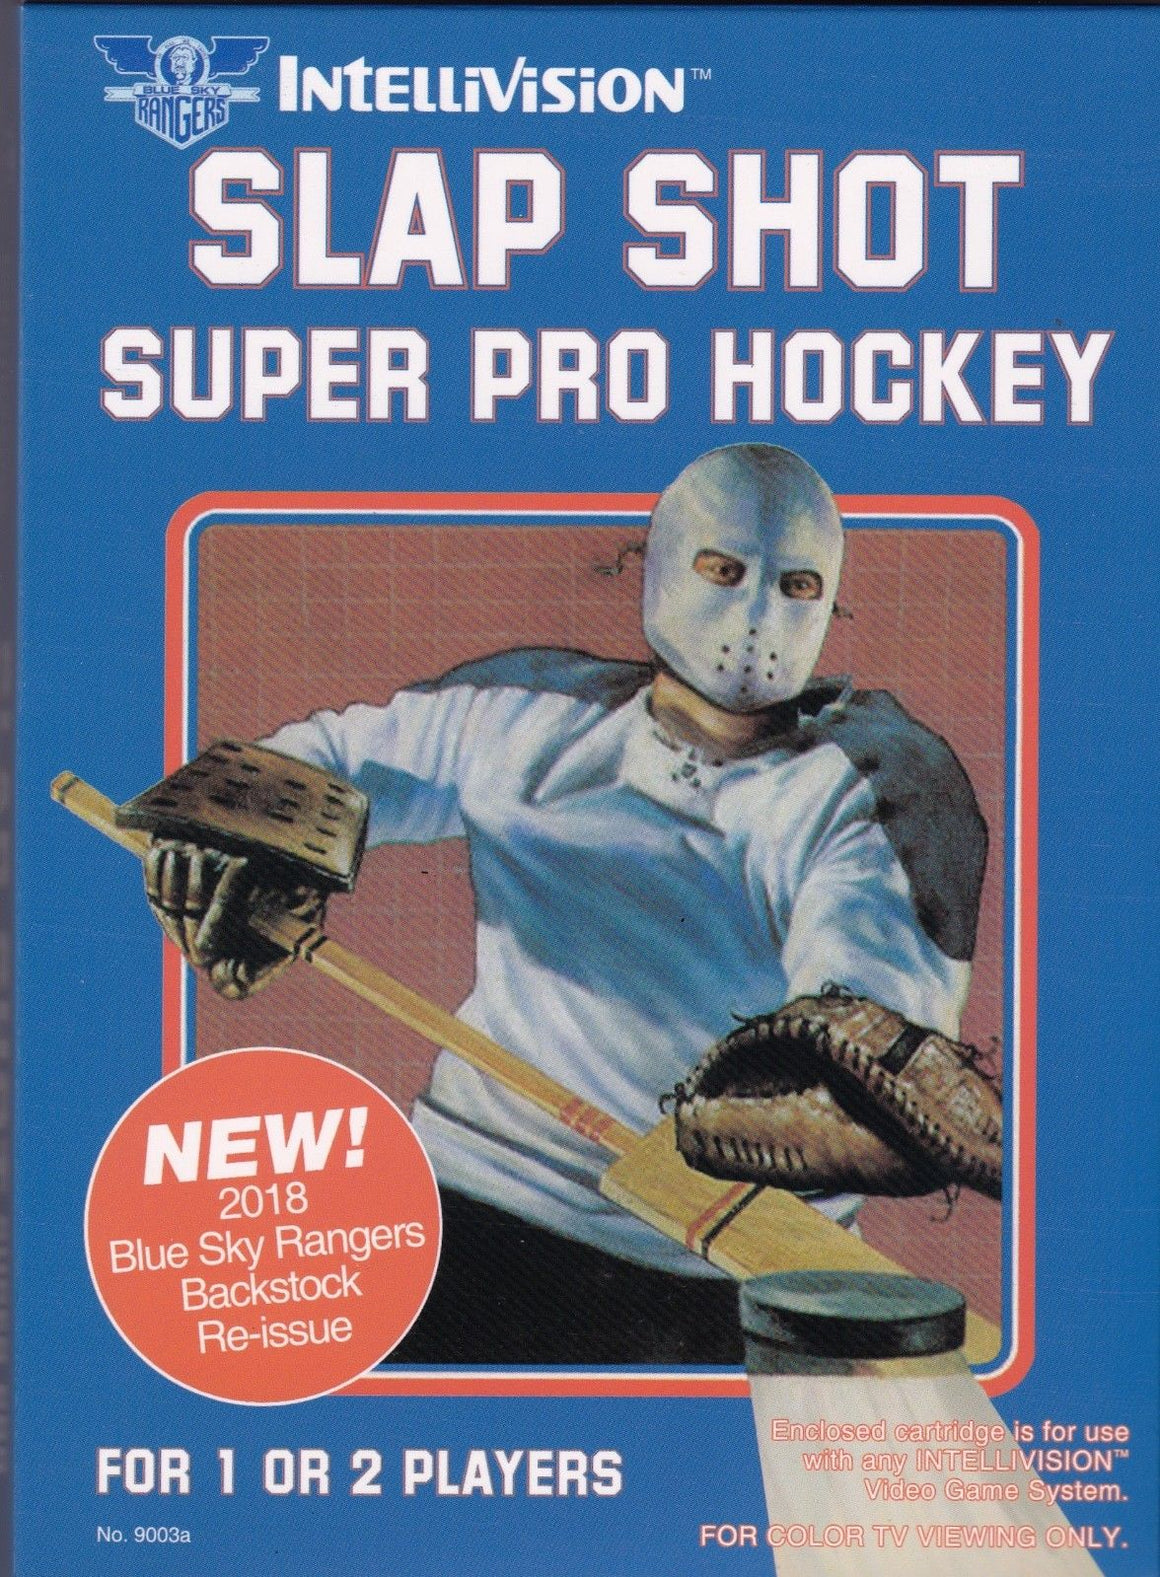 Slap Shot Super Pro Hockey for Intellivision - Complete Game Cartridge + Overlays in New Box